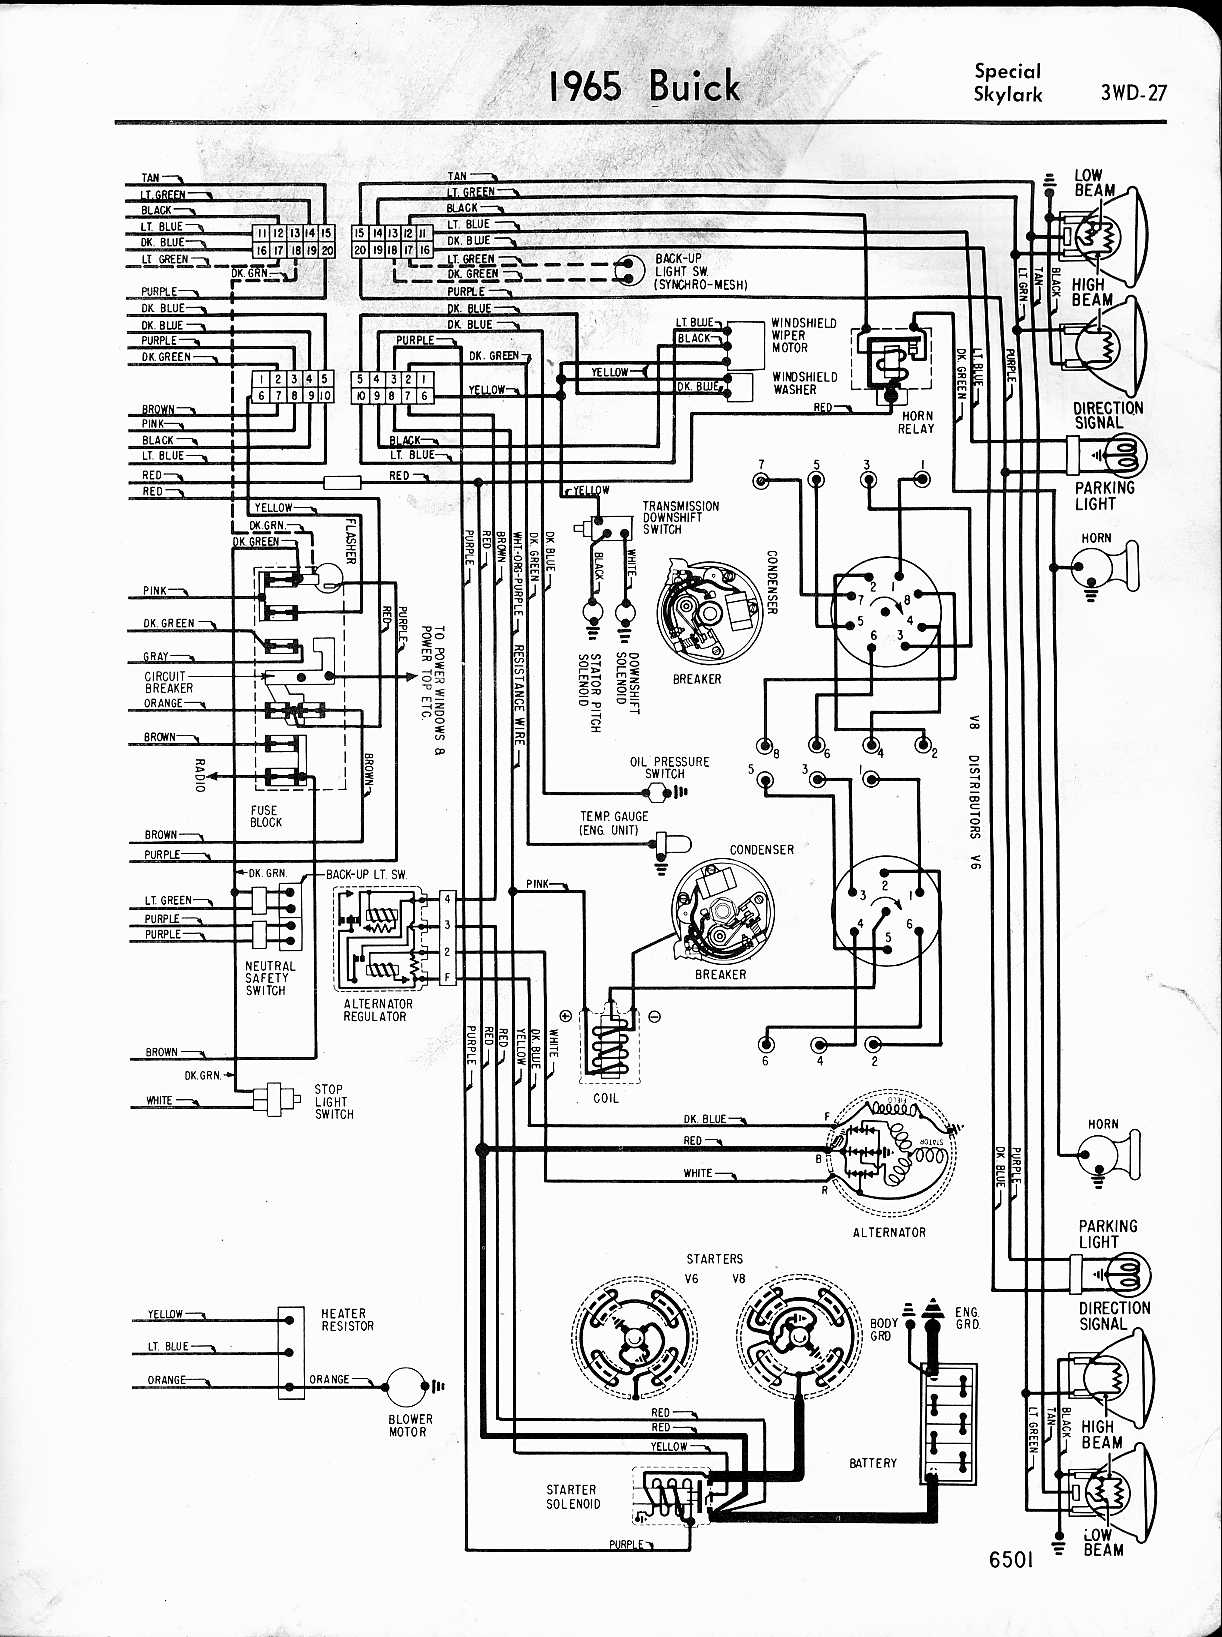 1971 buick 455 engine diagram